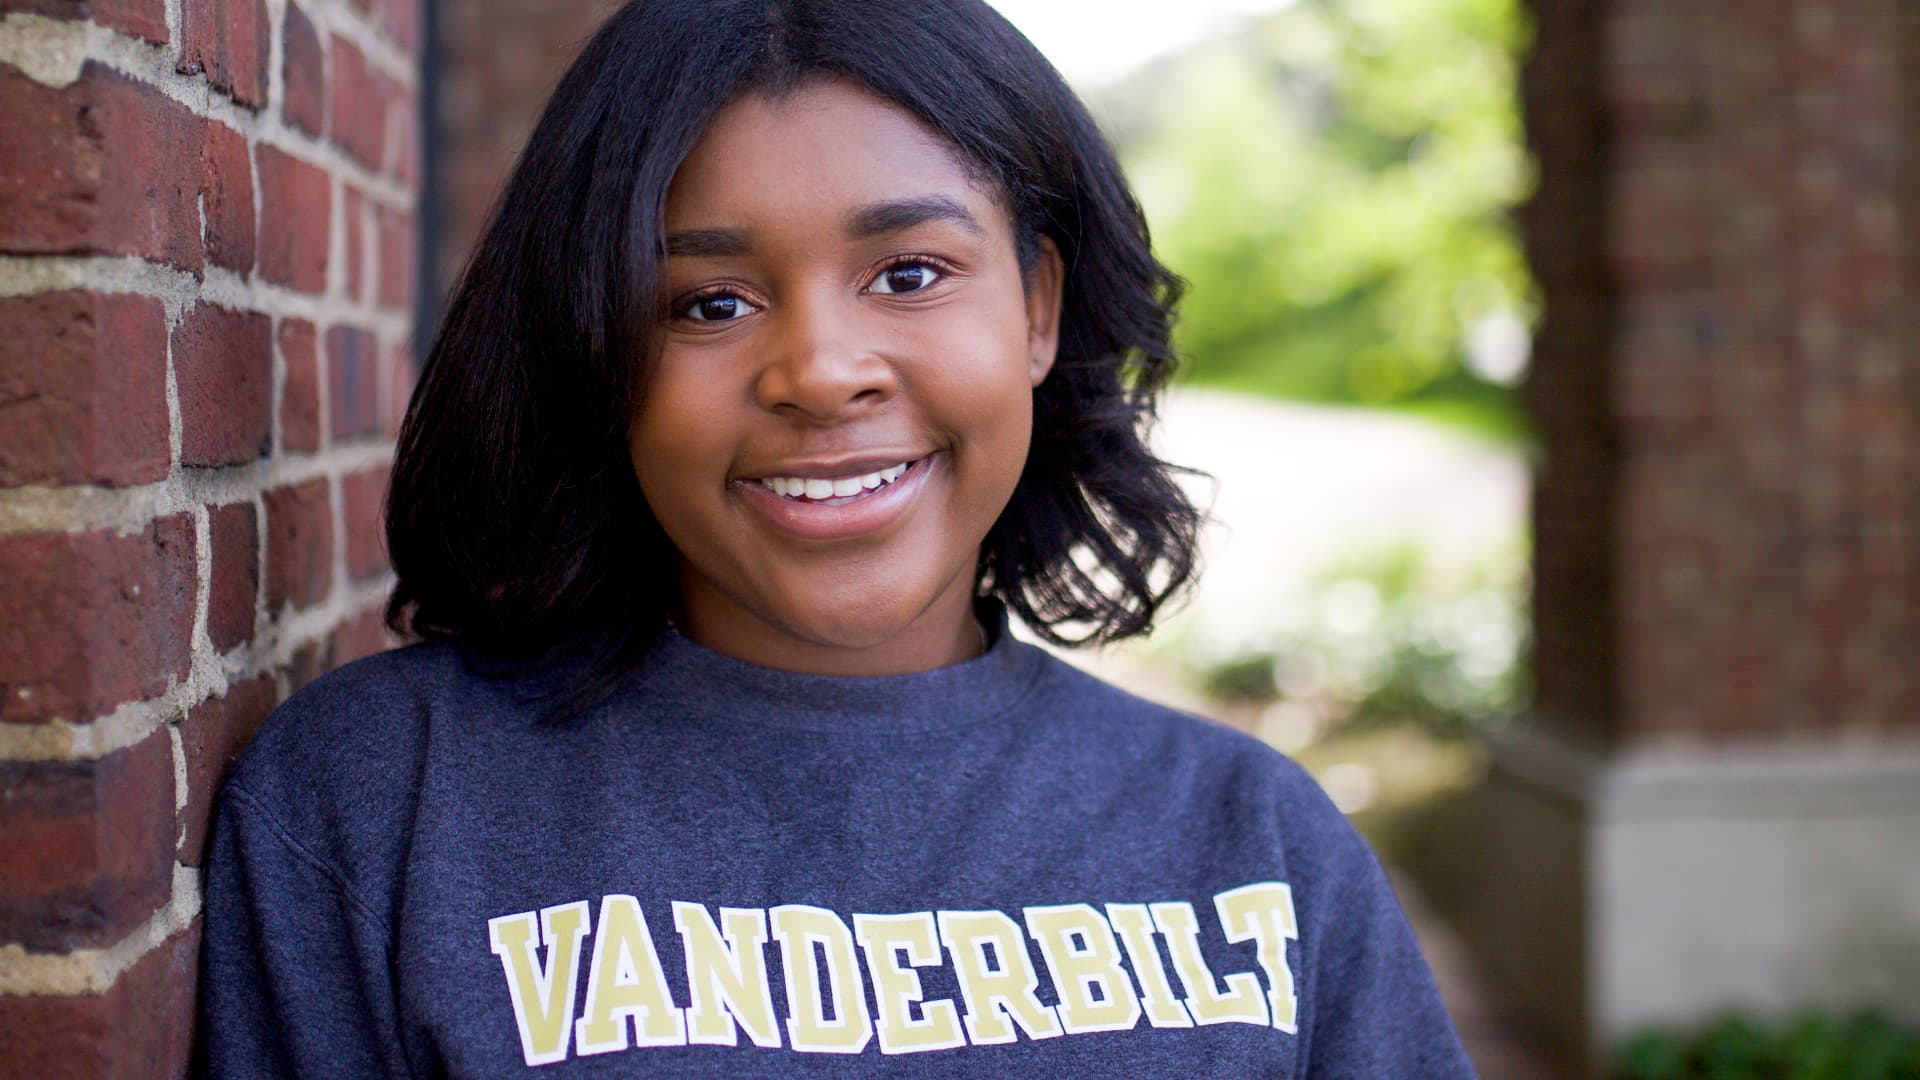 Cedoni Francis, a 2020 graduate of Vanderbilt University, worked as a student brand ambassador for TikTok, Bumble and Anheuser-Busch. She now works in marketing at Google.